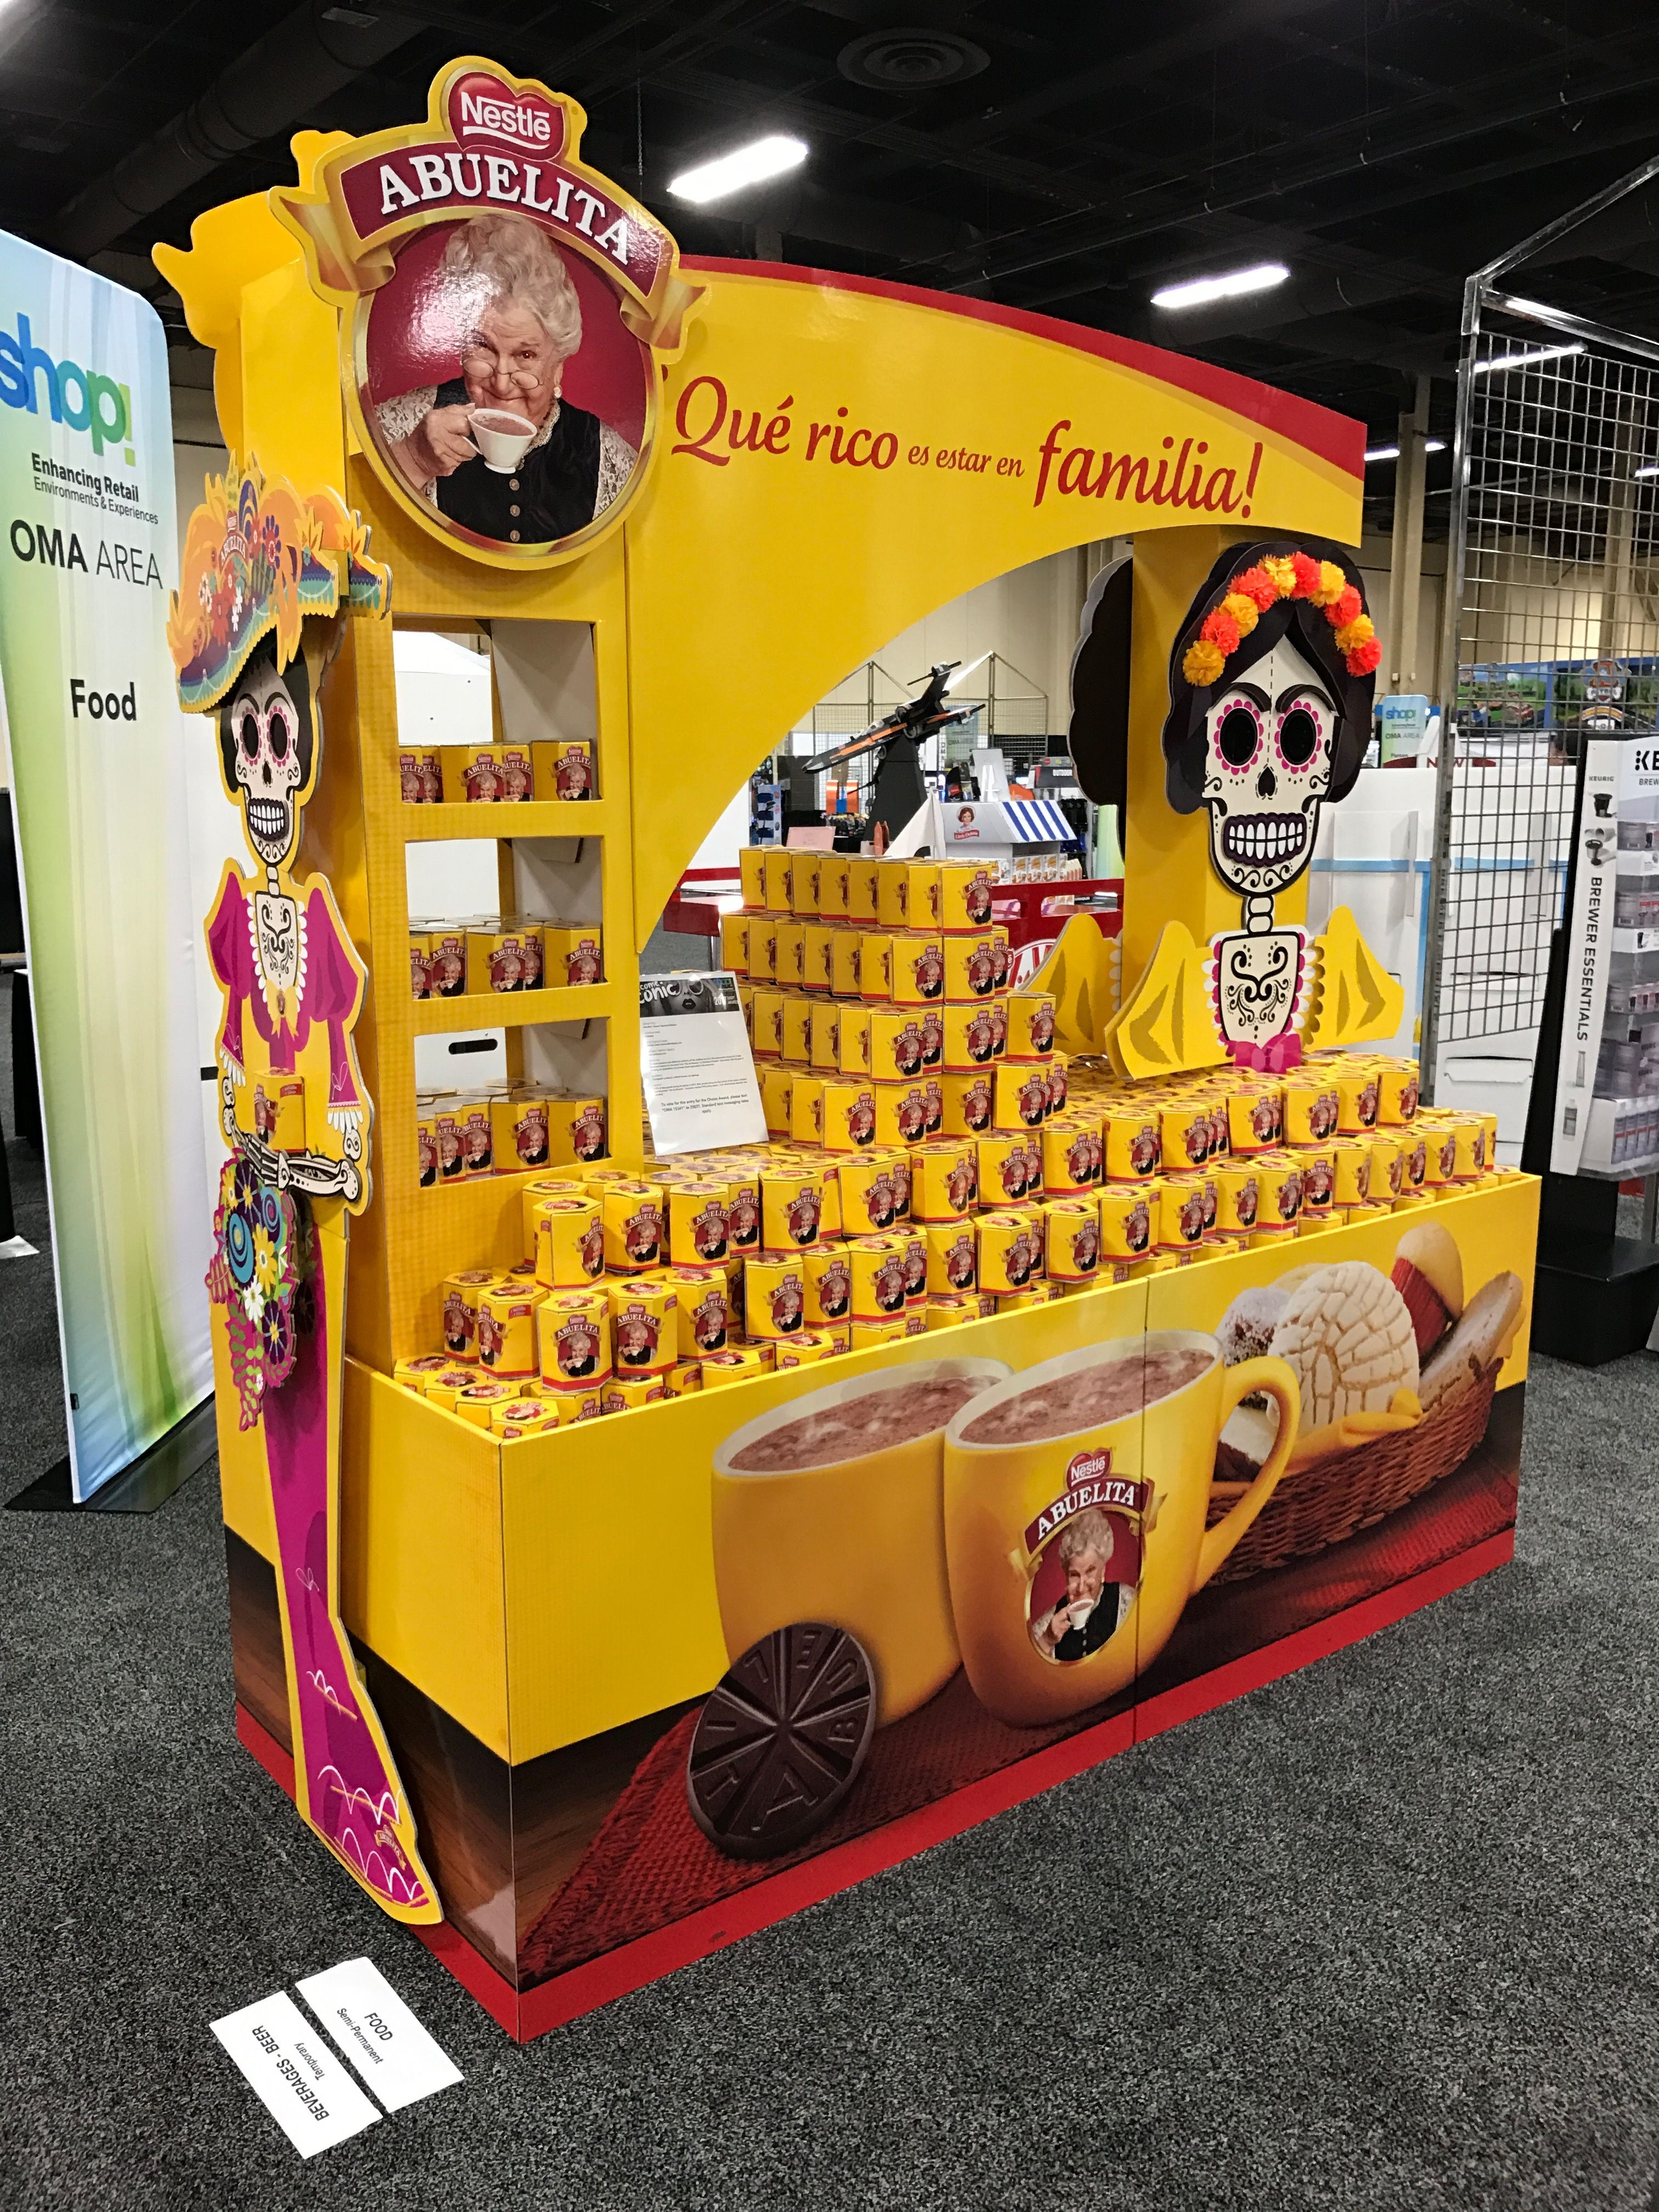 Looking To Purchase This Unit: Nestlé Abuelita Free Standing Unit